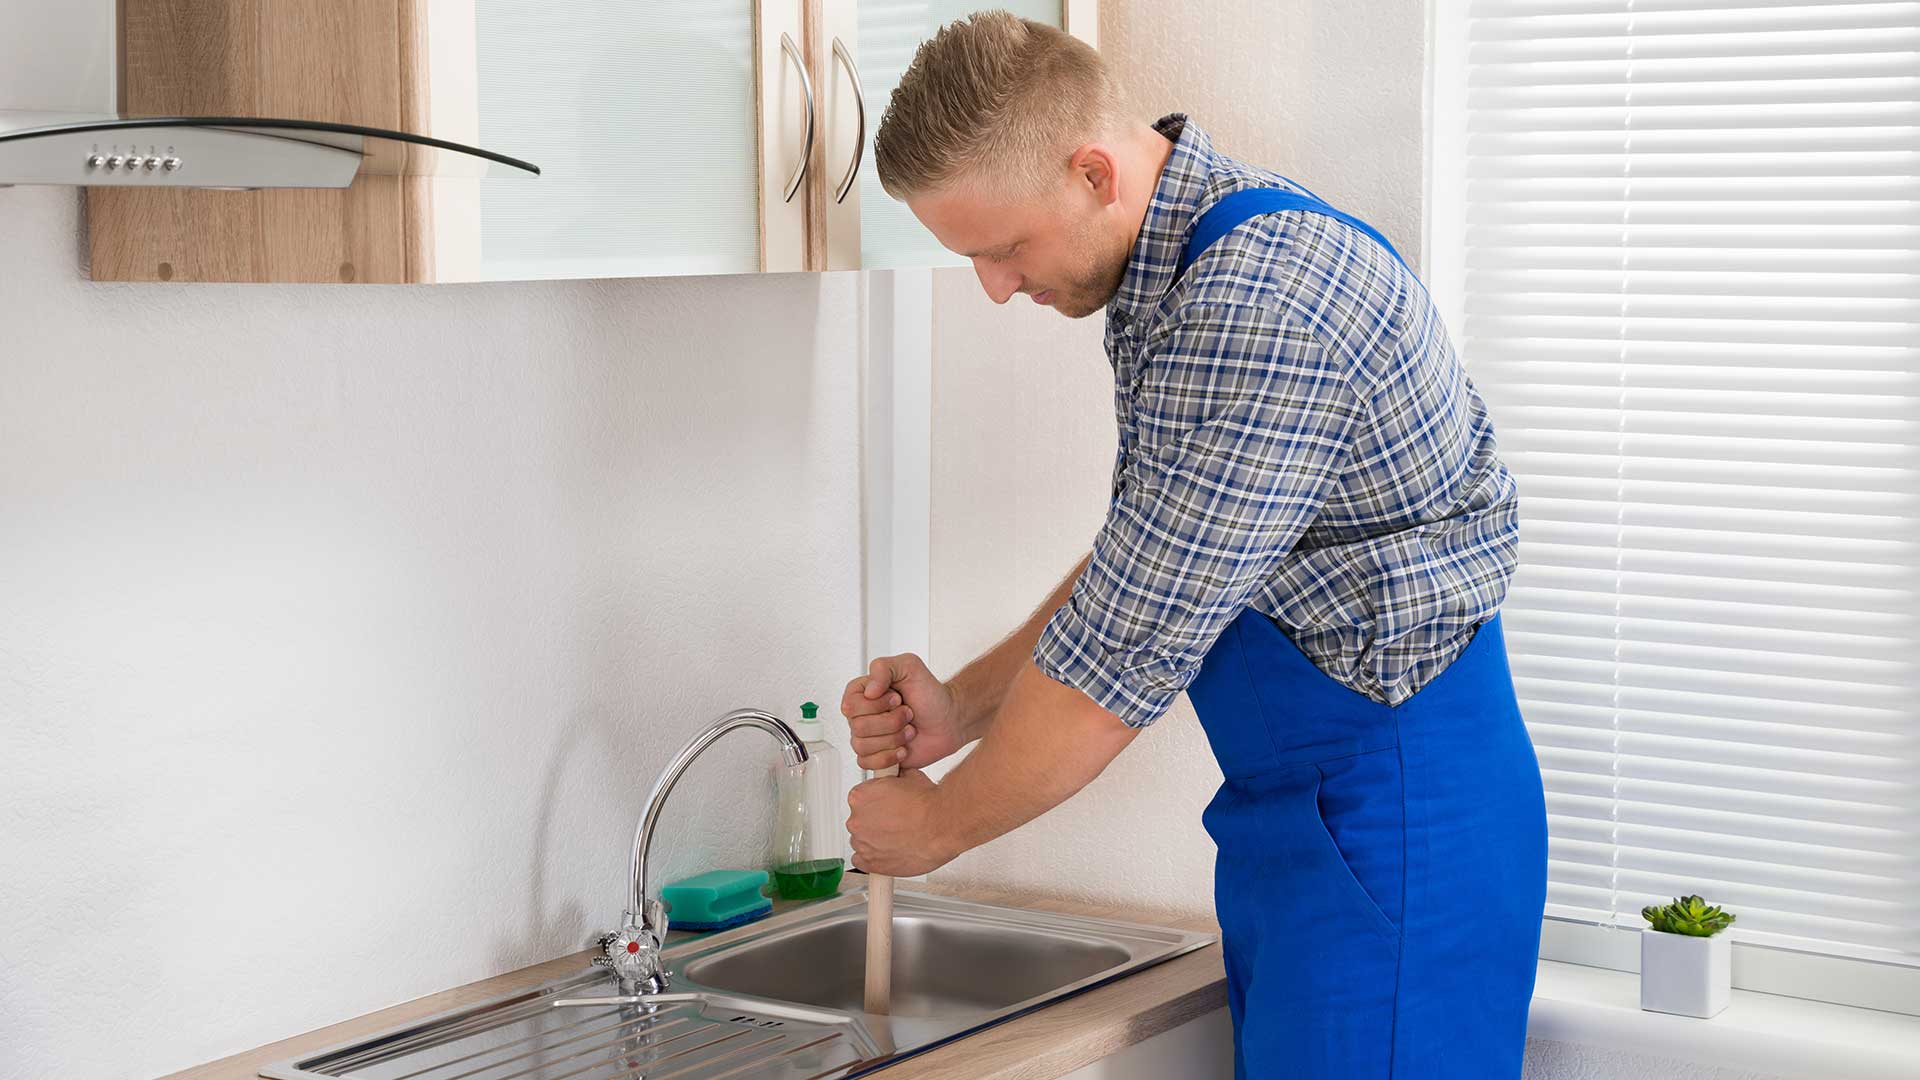 8 Most Common Causes Of Clogged Drains And How To Prevent Them